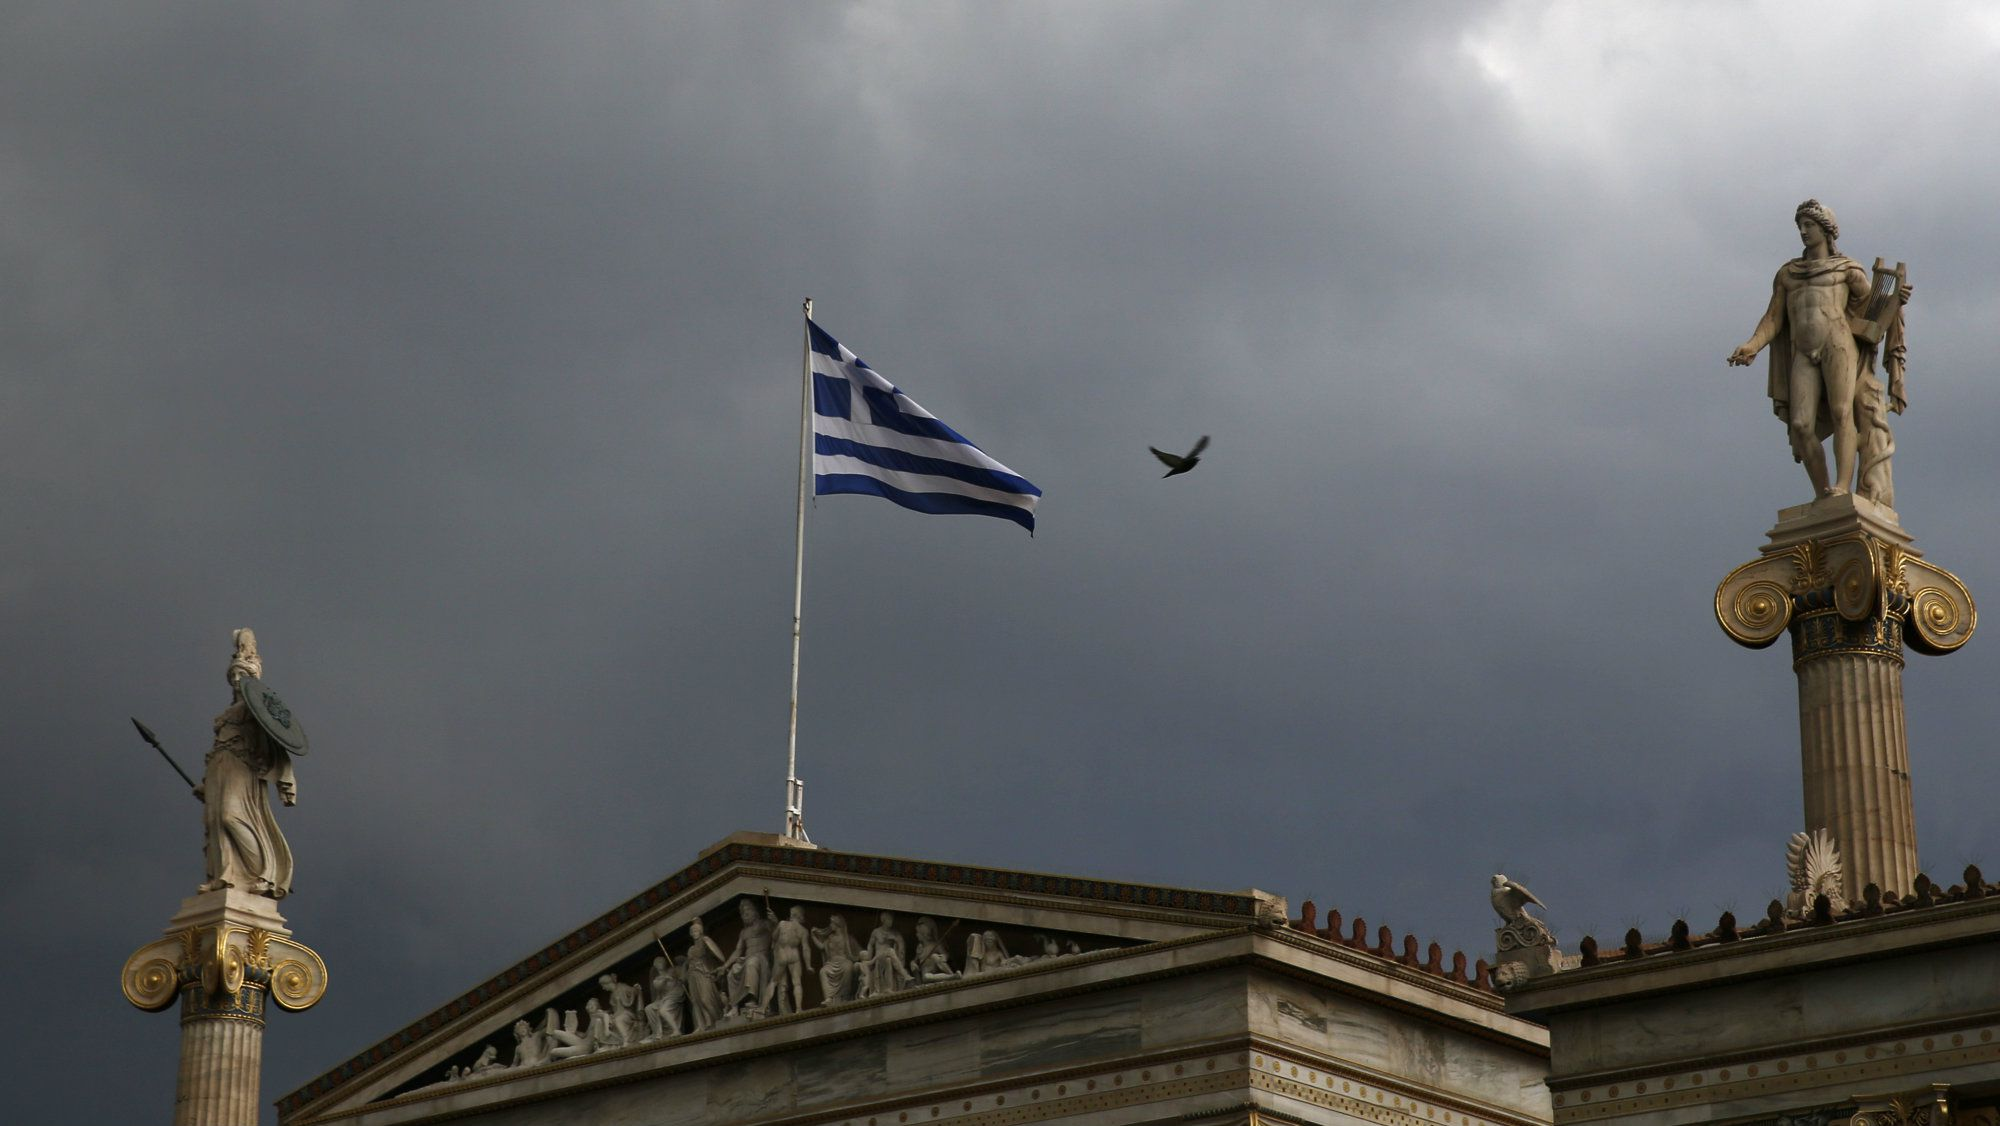 A Greek national flag flutters atop the university building as dark clouds fill the sky in Athens, Greece, June 30, 2015.